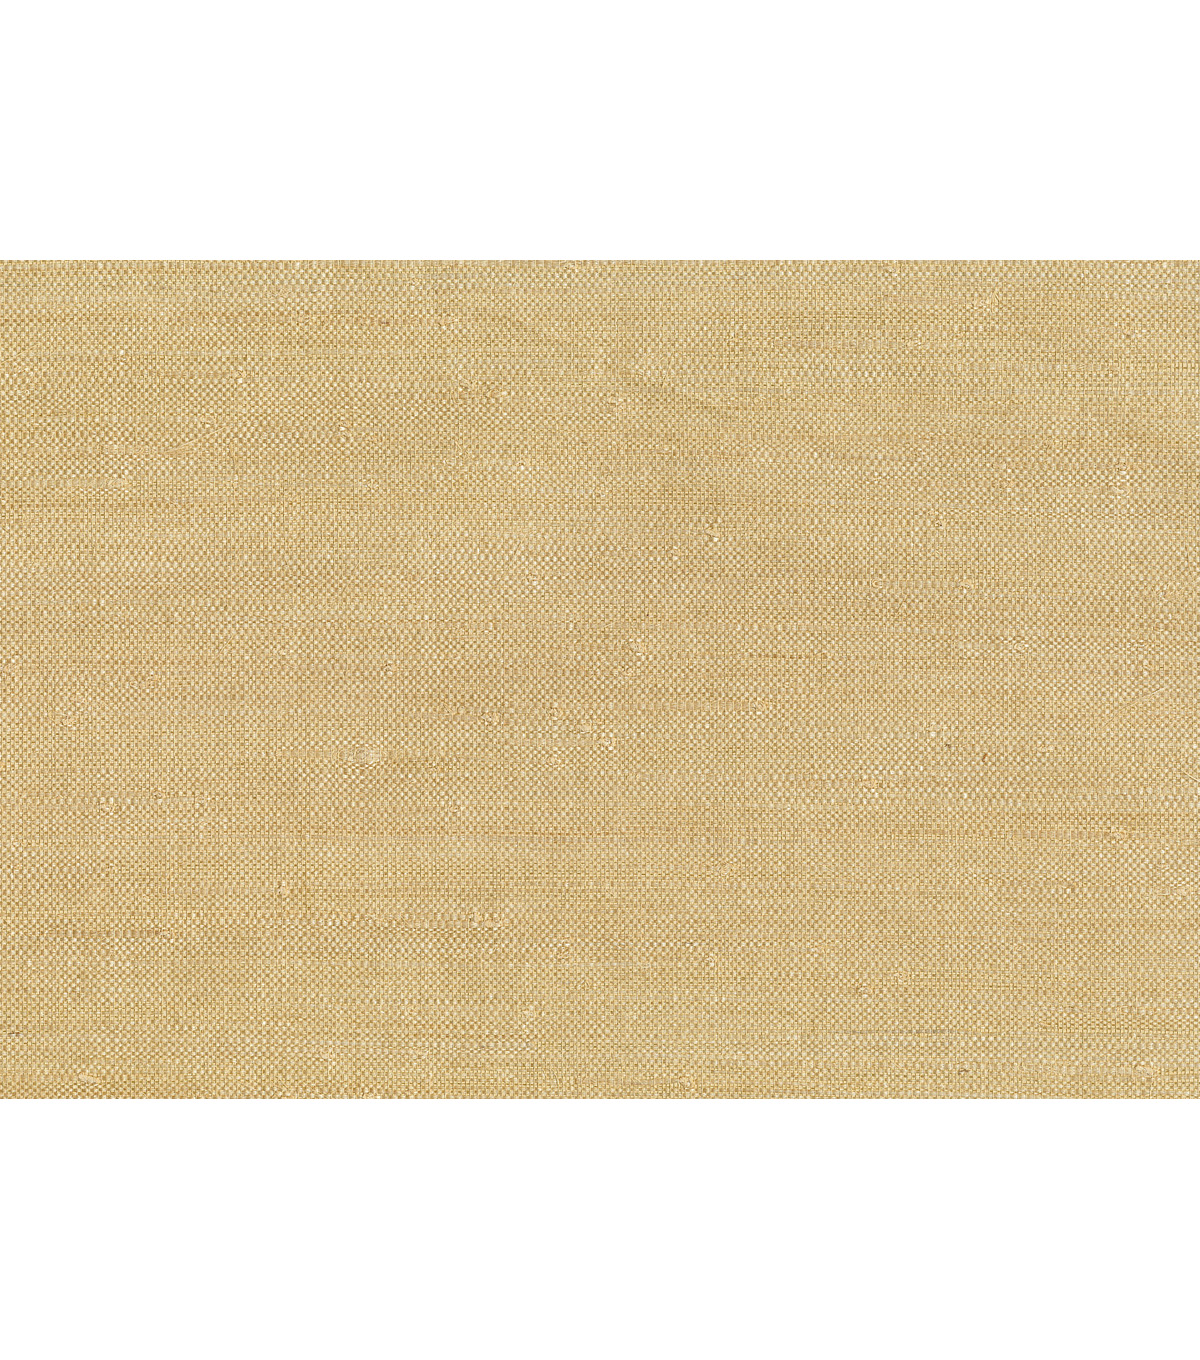 Kimiko Cream Grasscloth Wallpaper Sample